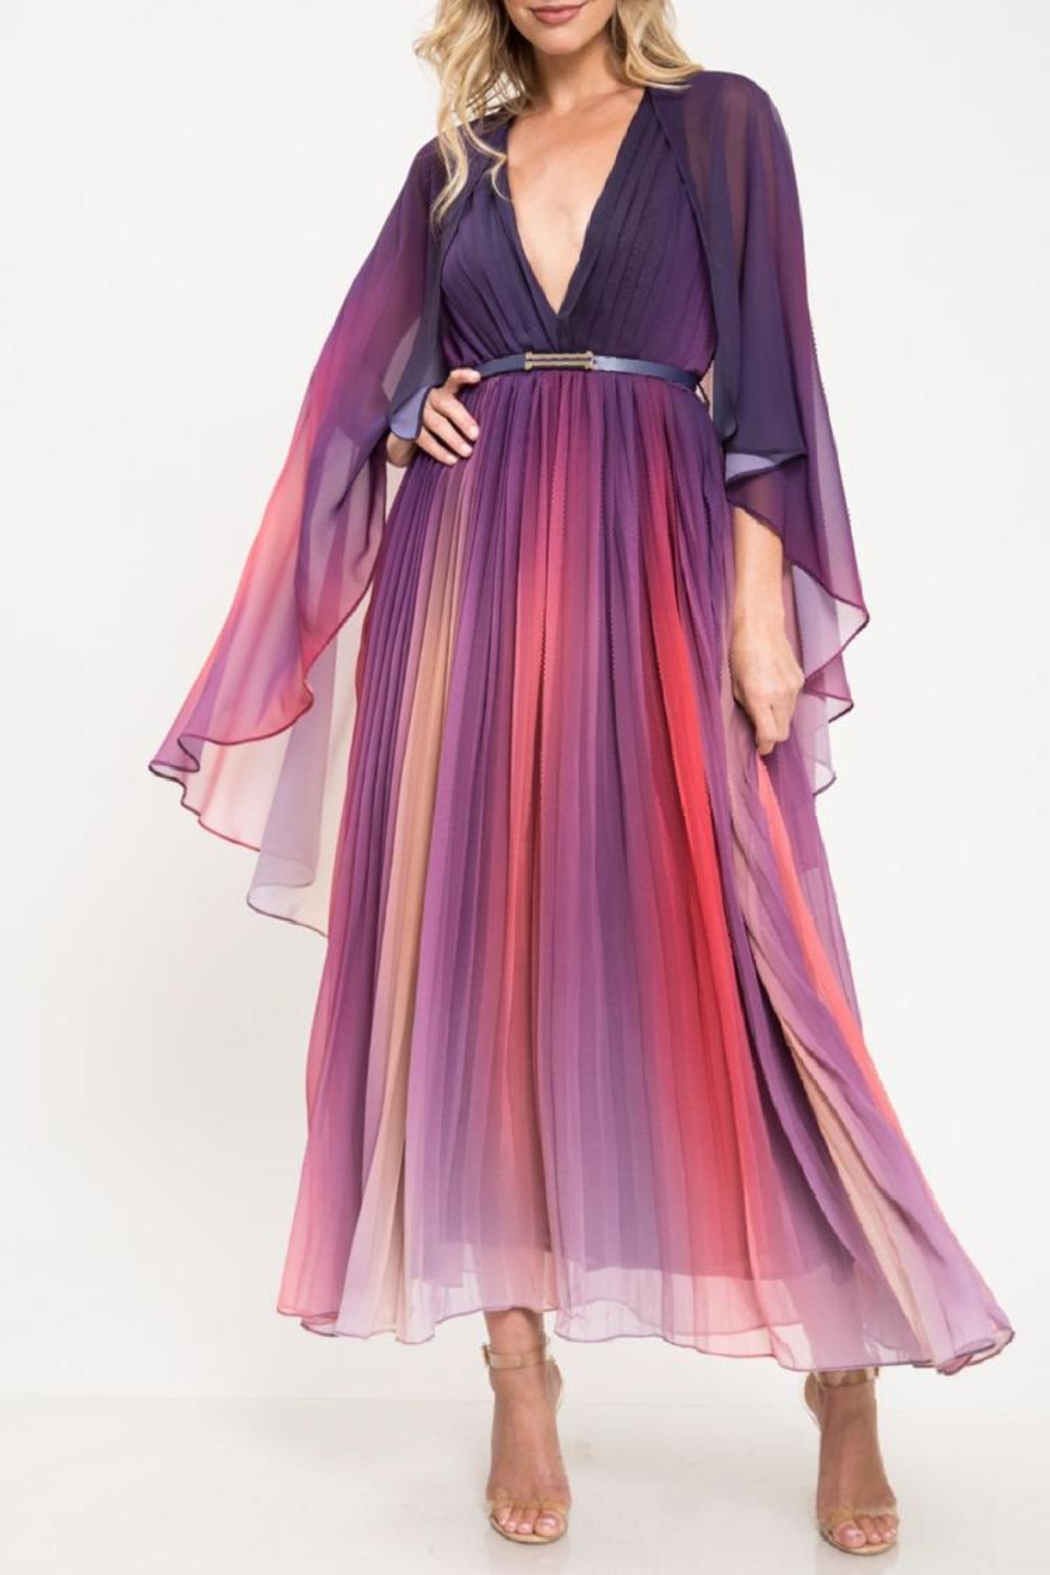 Latiste Multi-Colored Pleated Dress - Front Full Image